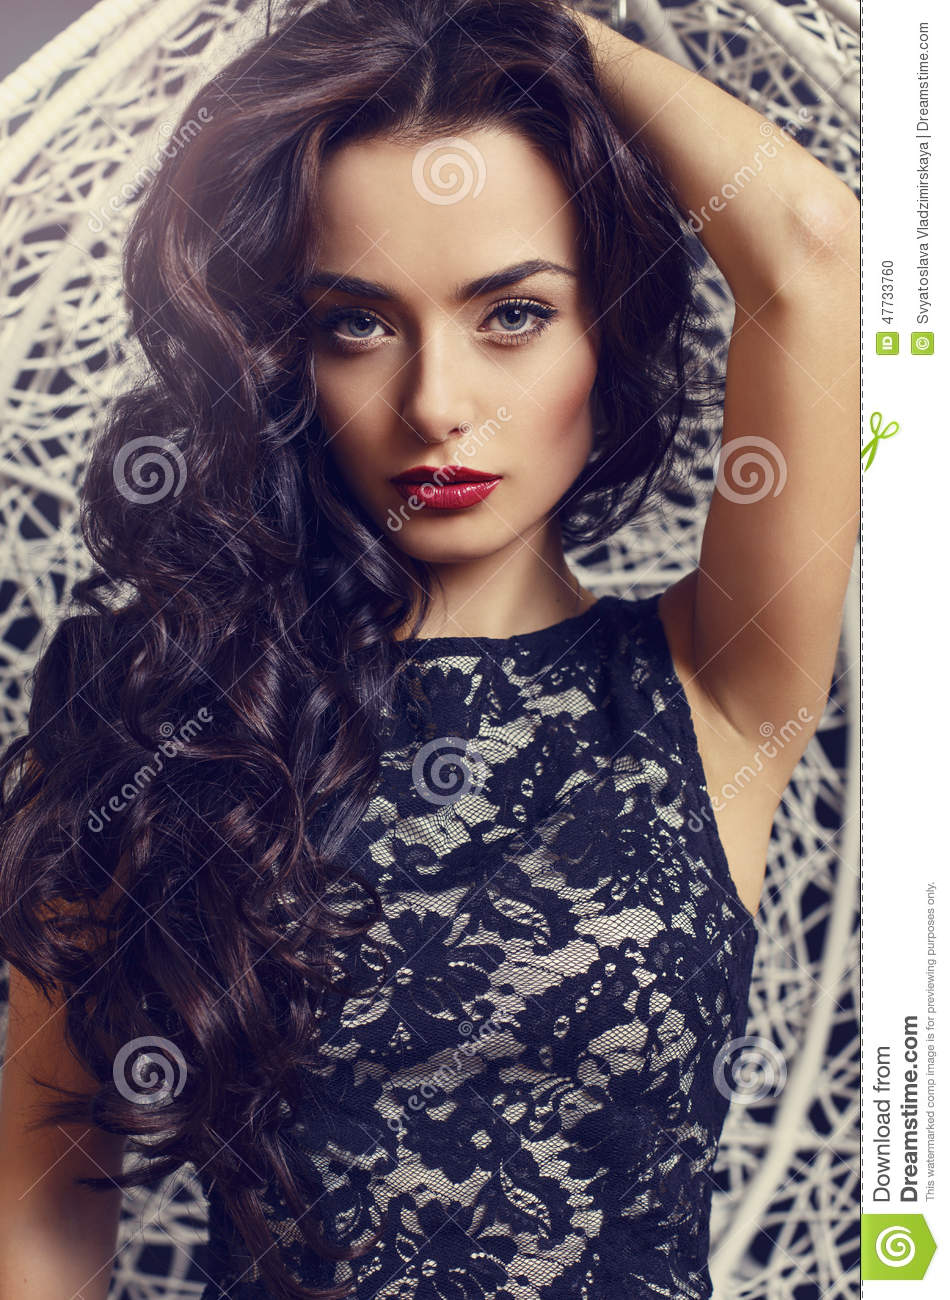 66f51bfc8fbe7 Fashion studio portrait of beautiful sensual woman with long dark curly hair  wearing elegant lace dress